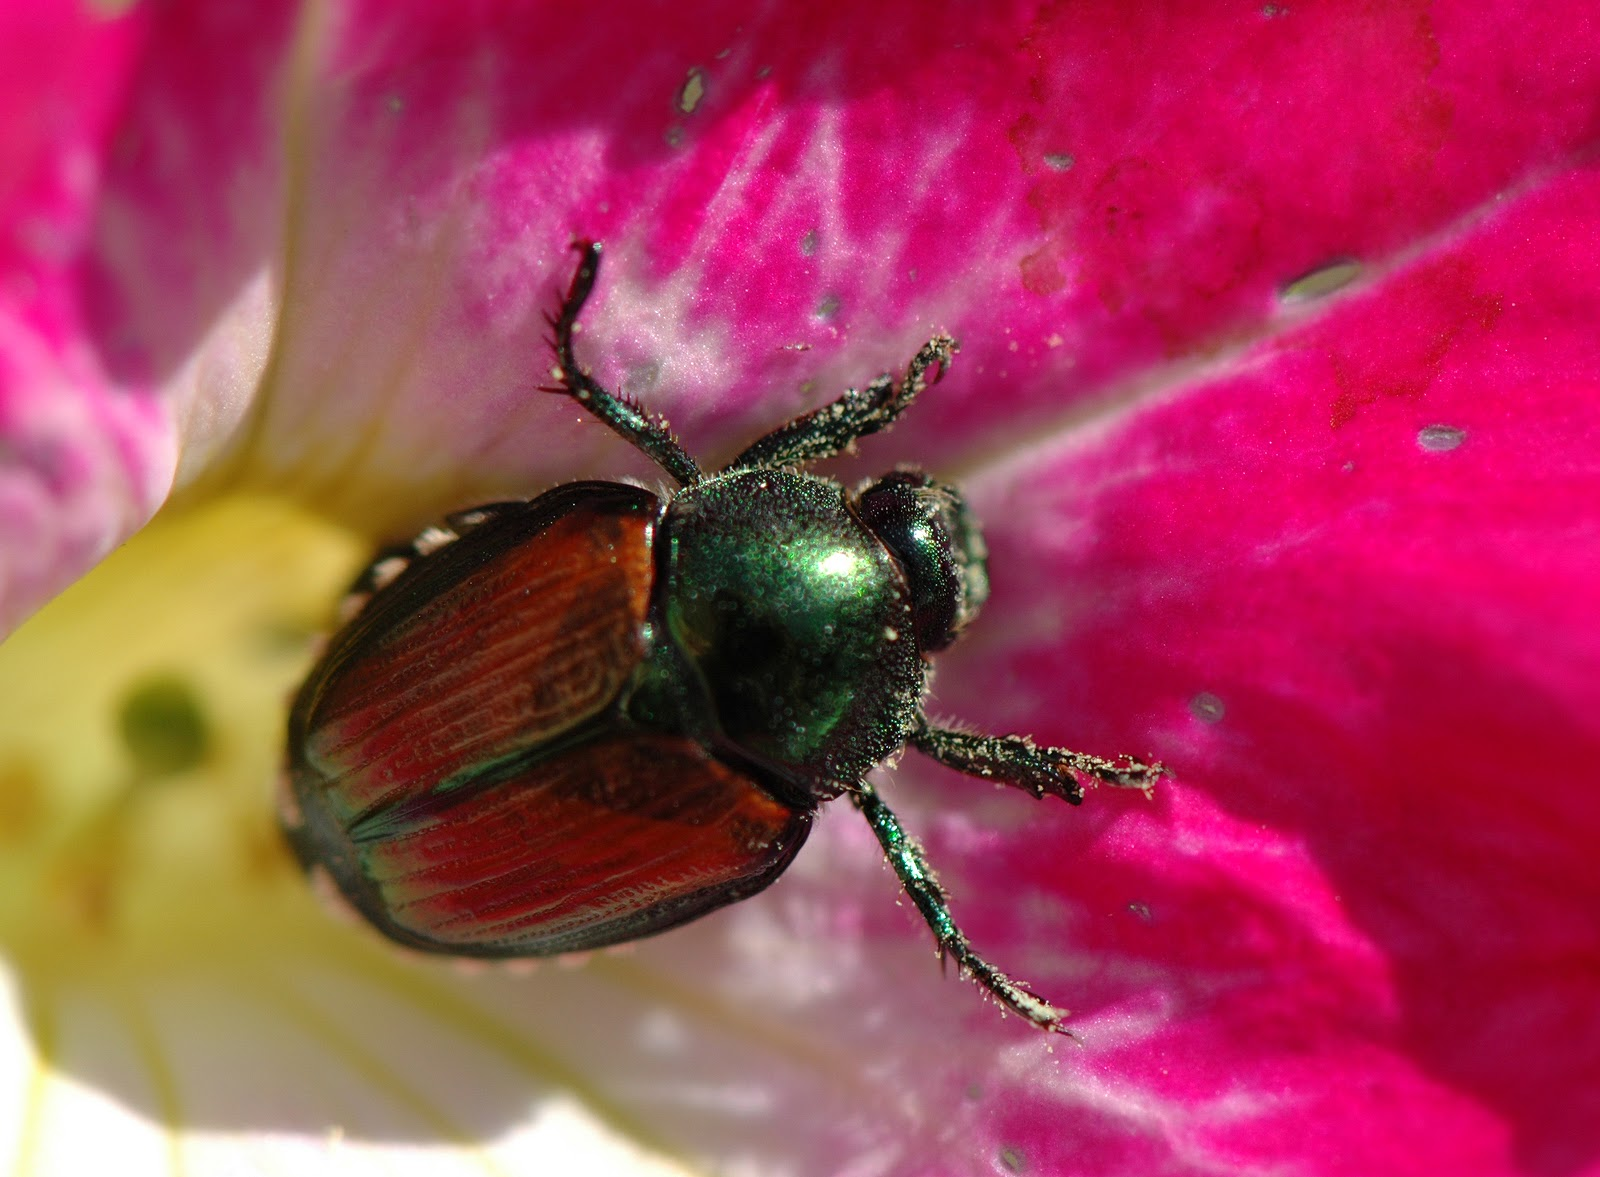 An image of a Japanese Beetle on a pink flower that our tree pest control service will help you contain.